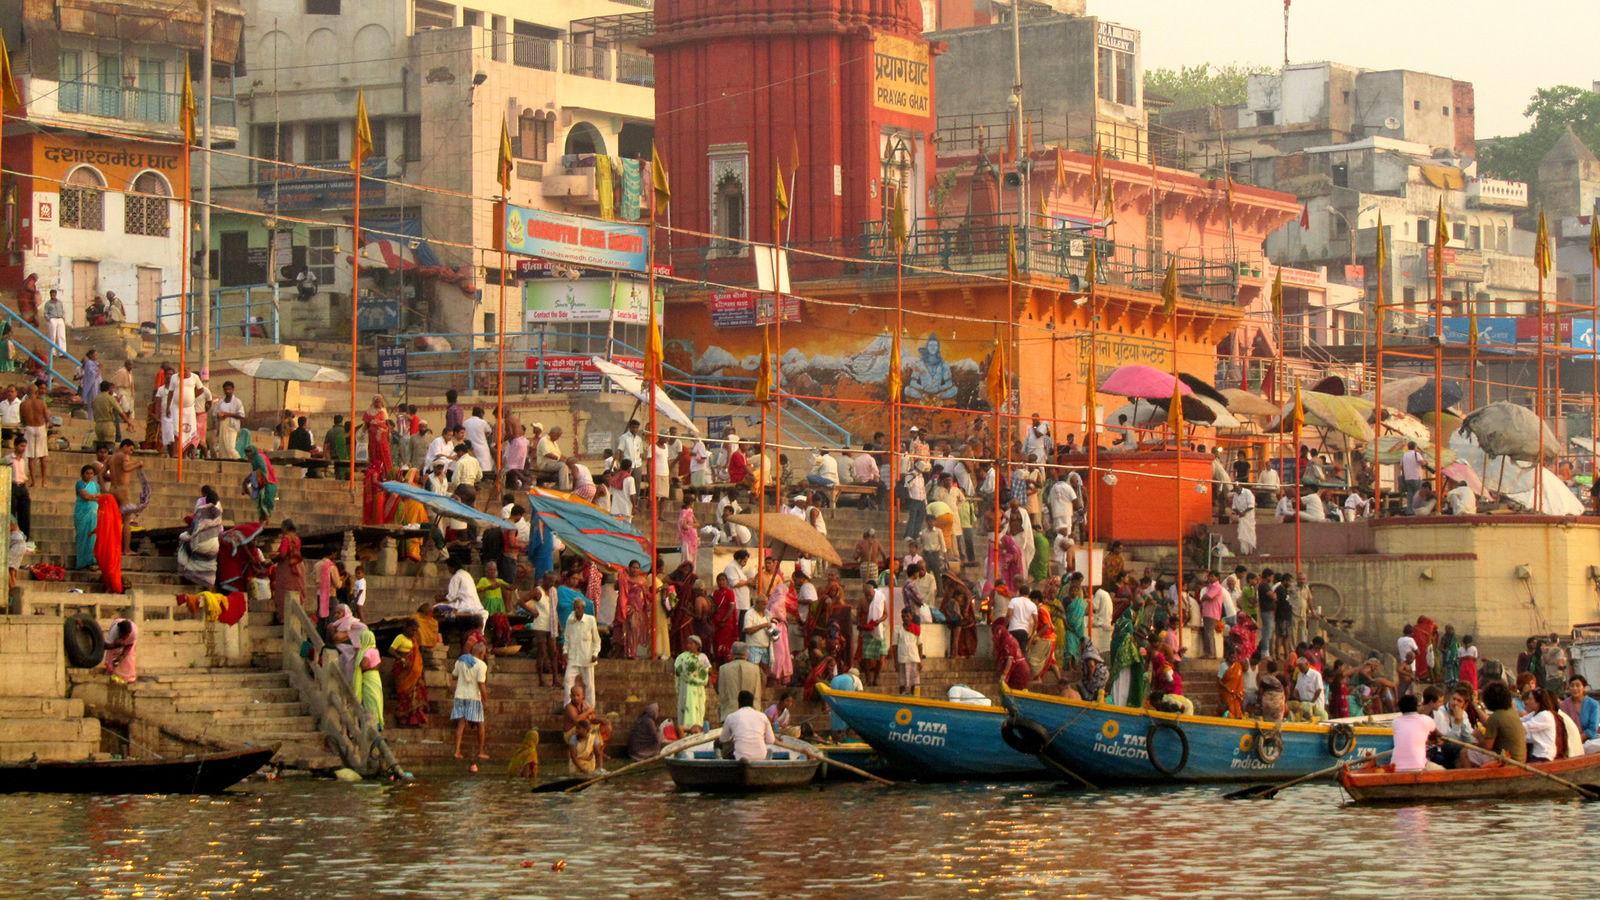 Boats and Shoreline of Ganges River in India